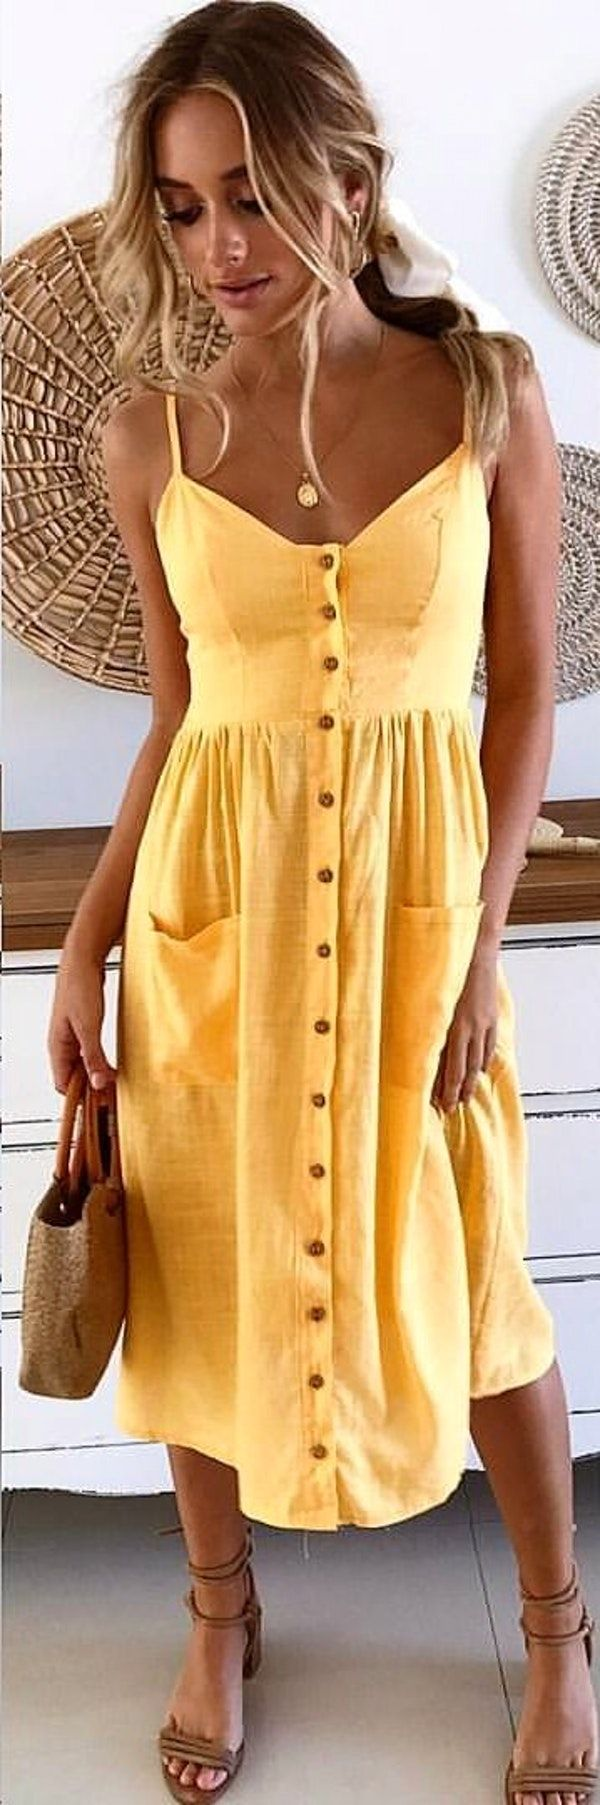 #winter #outfits  yellow spaghetti strap dress